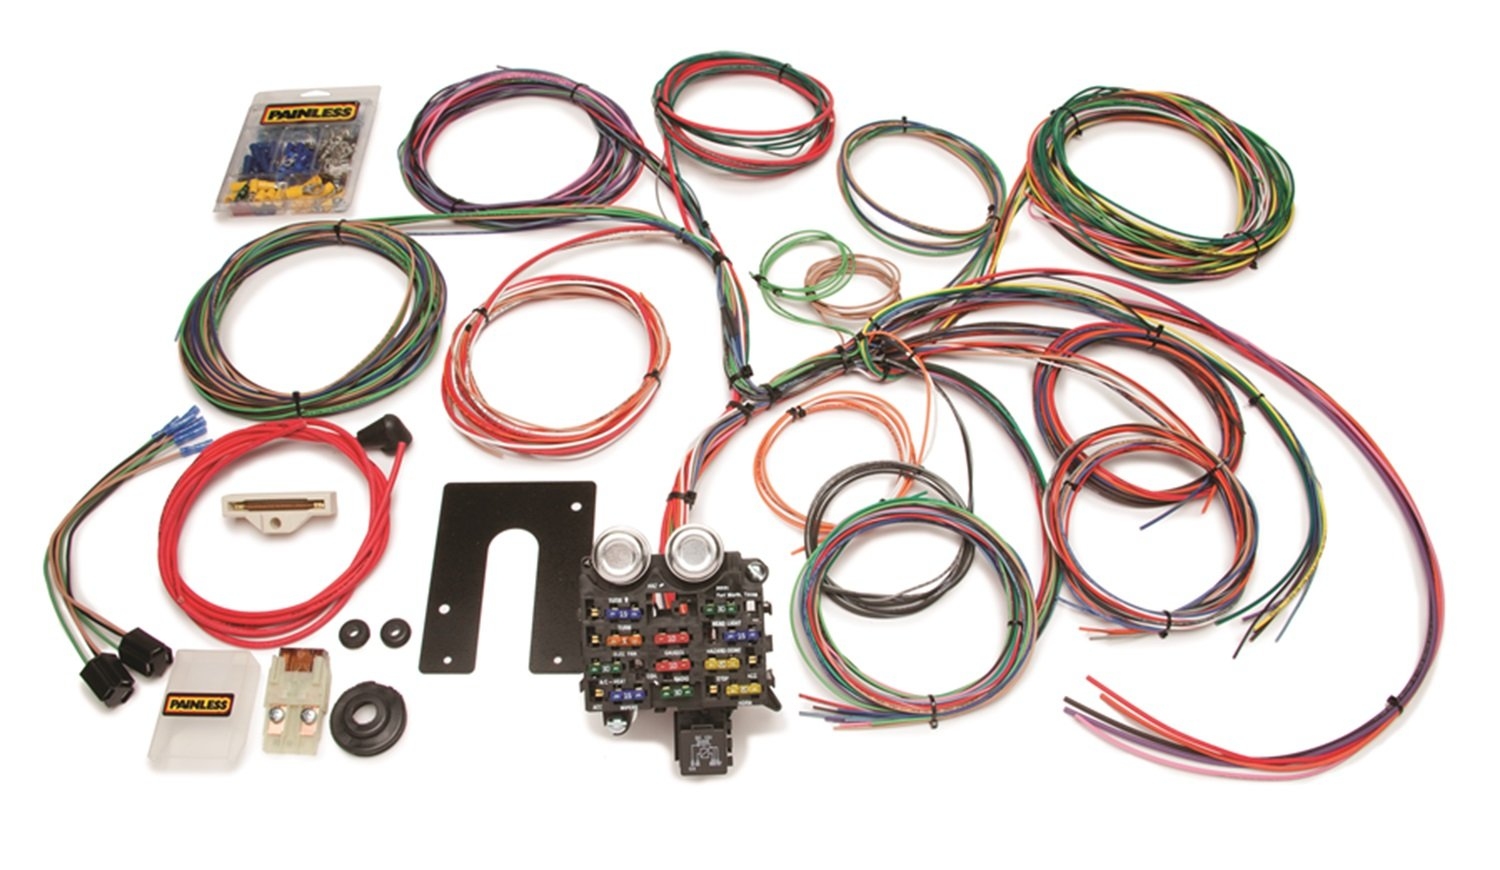 71y4s8BuPyL._SL1500_ amazon com painless wire 10105 wiring harness with firewall Wire Grommets Rubber Harness Aplications at honlapkeszites.co